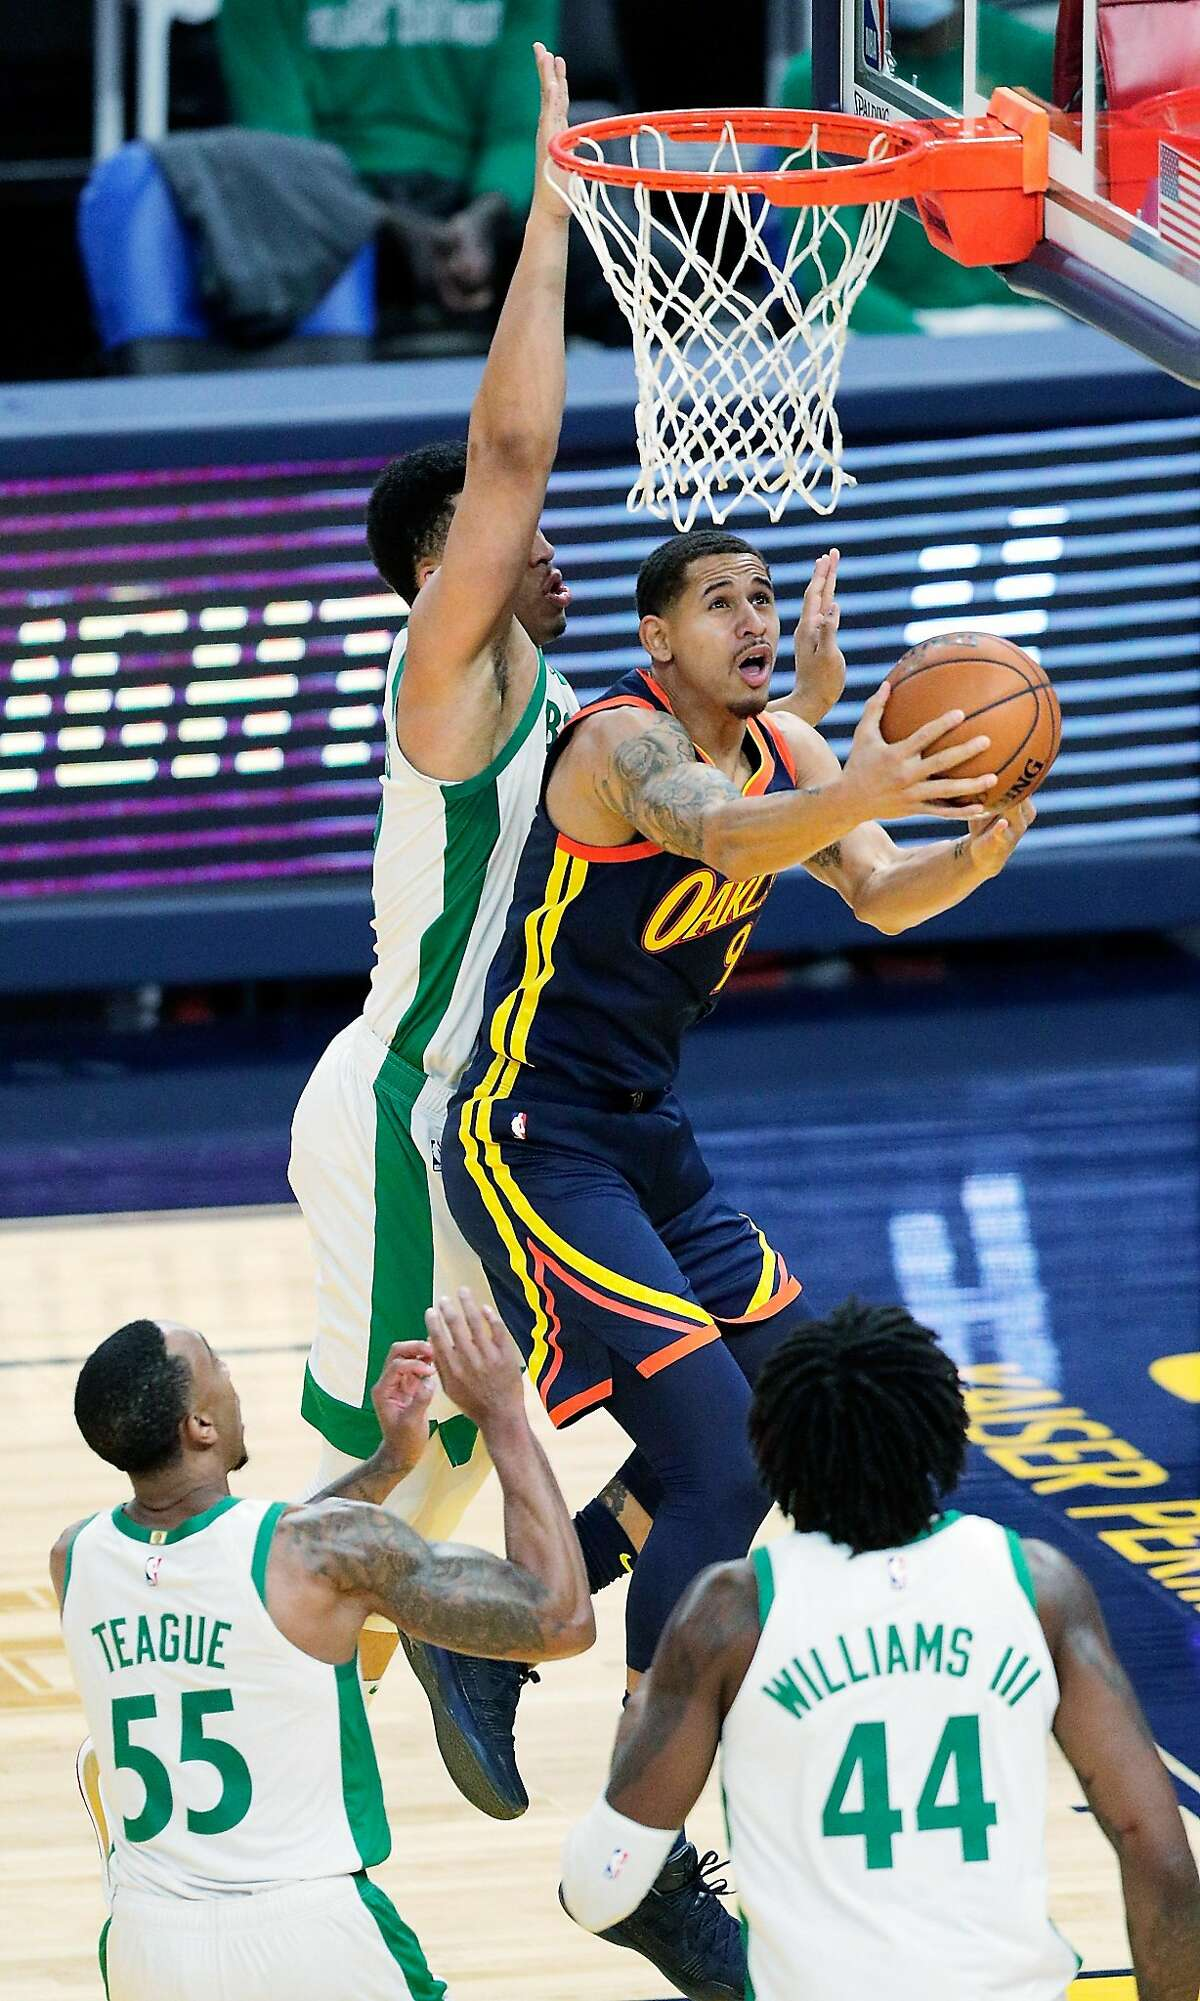 Juan Toscano Anderson (95) shoots in the first half as the Golden State Warriors played the Boston Celtics at Chase Center in San Francisco, Calif., on Tuesday, February 2, 2021.